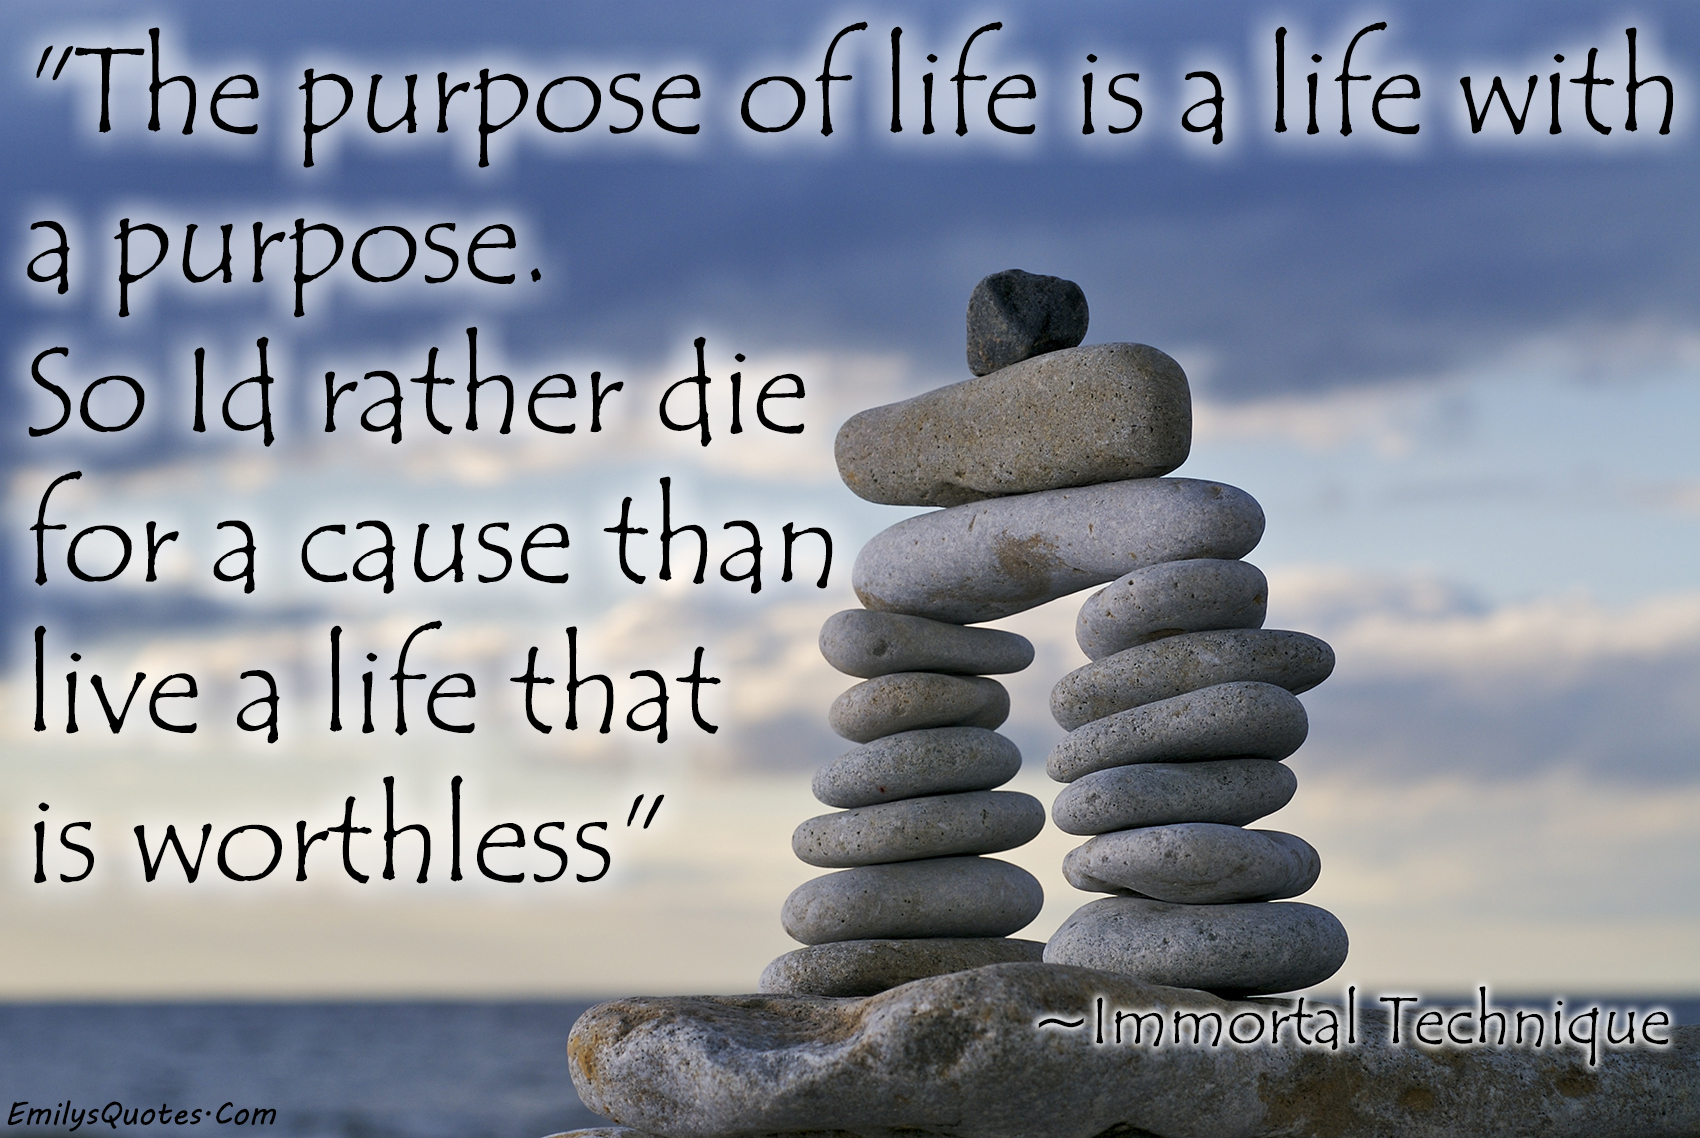 Life Purpose Quotes The Purpose Of Life Is A Life With A Purposeso I'd Rather Die